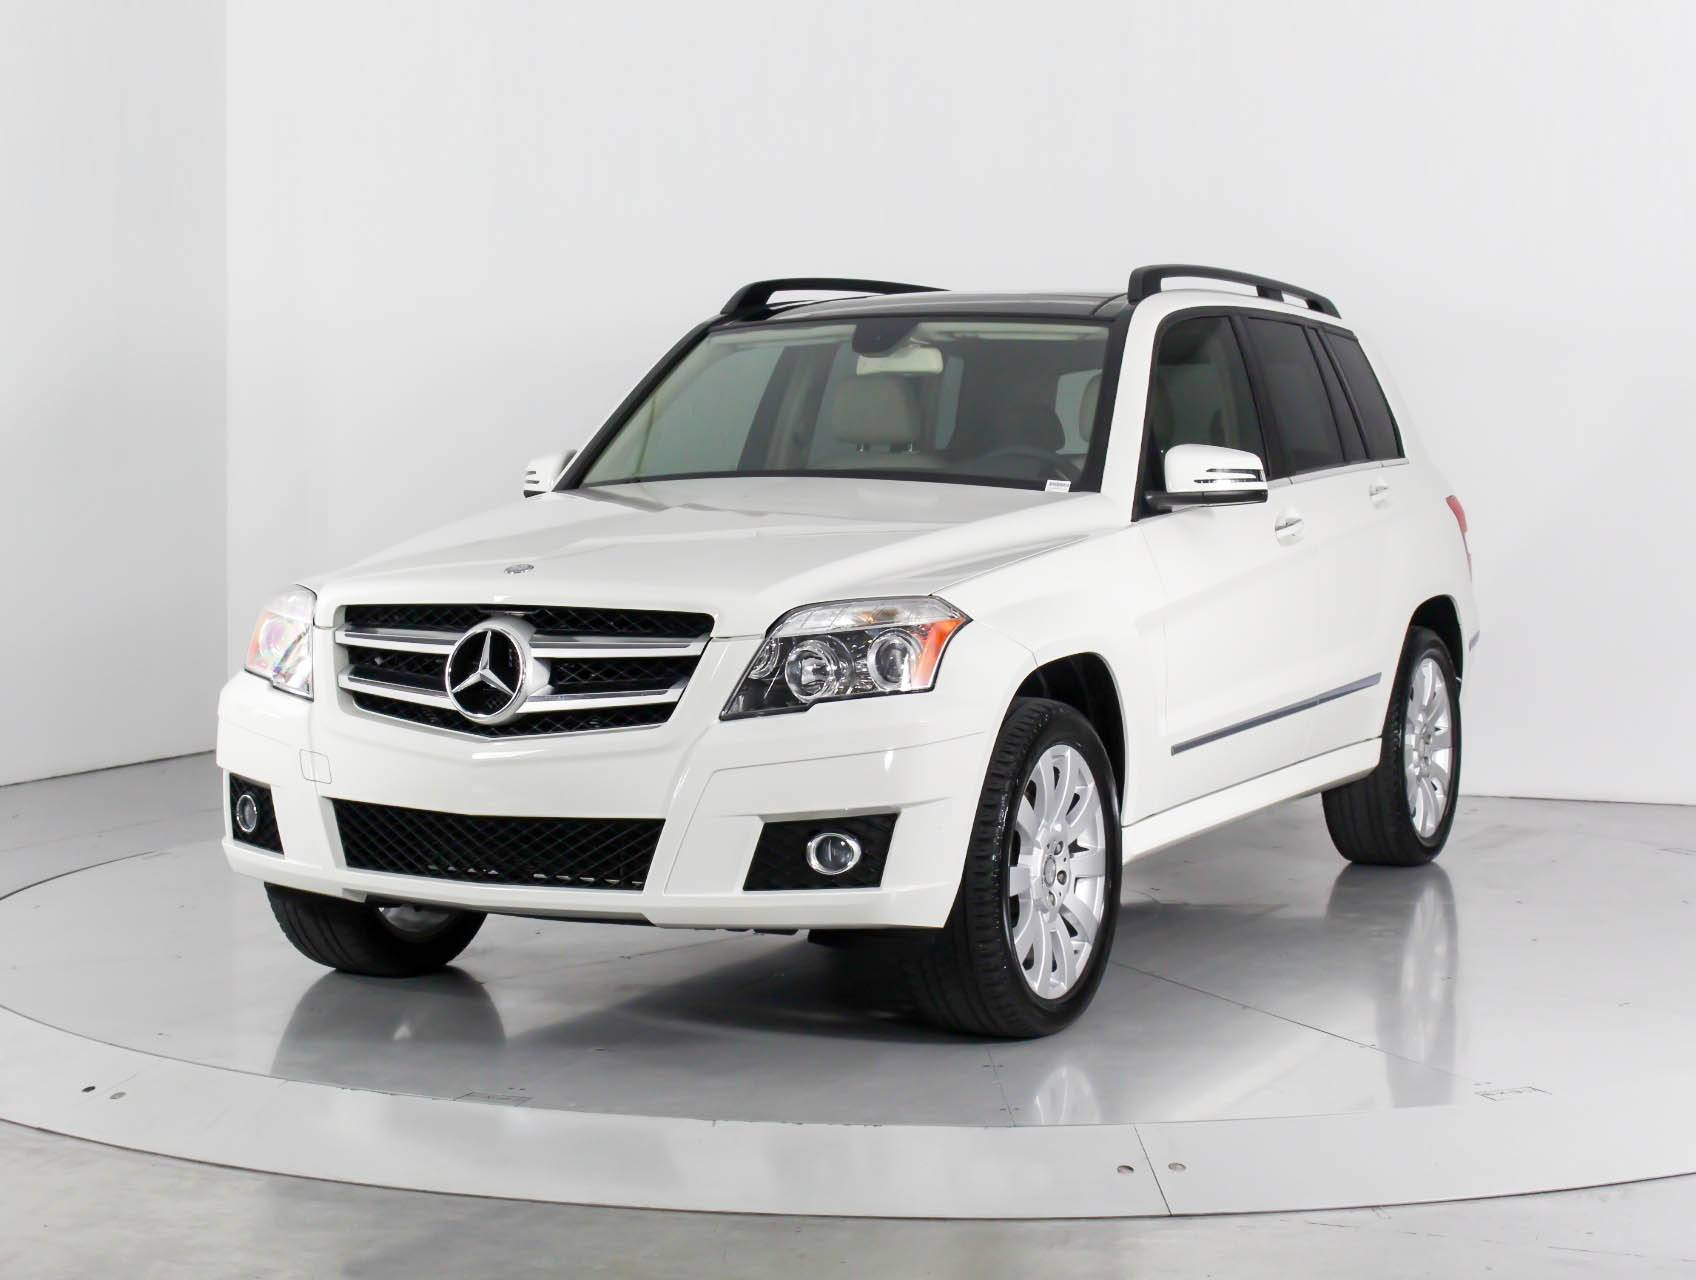 Used 2012 Mercedes Benz Glk Class Glk350 Suv For Sale In West Palm